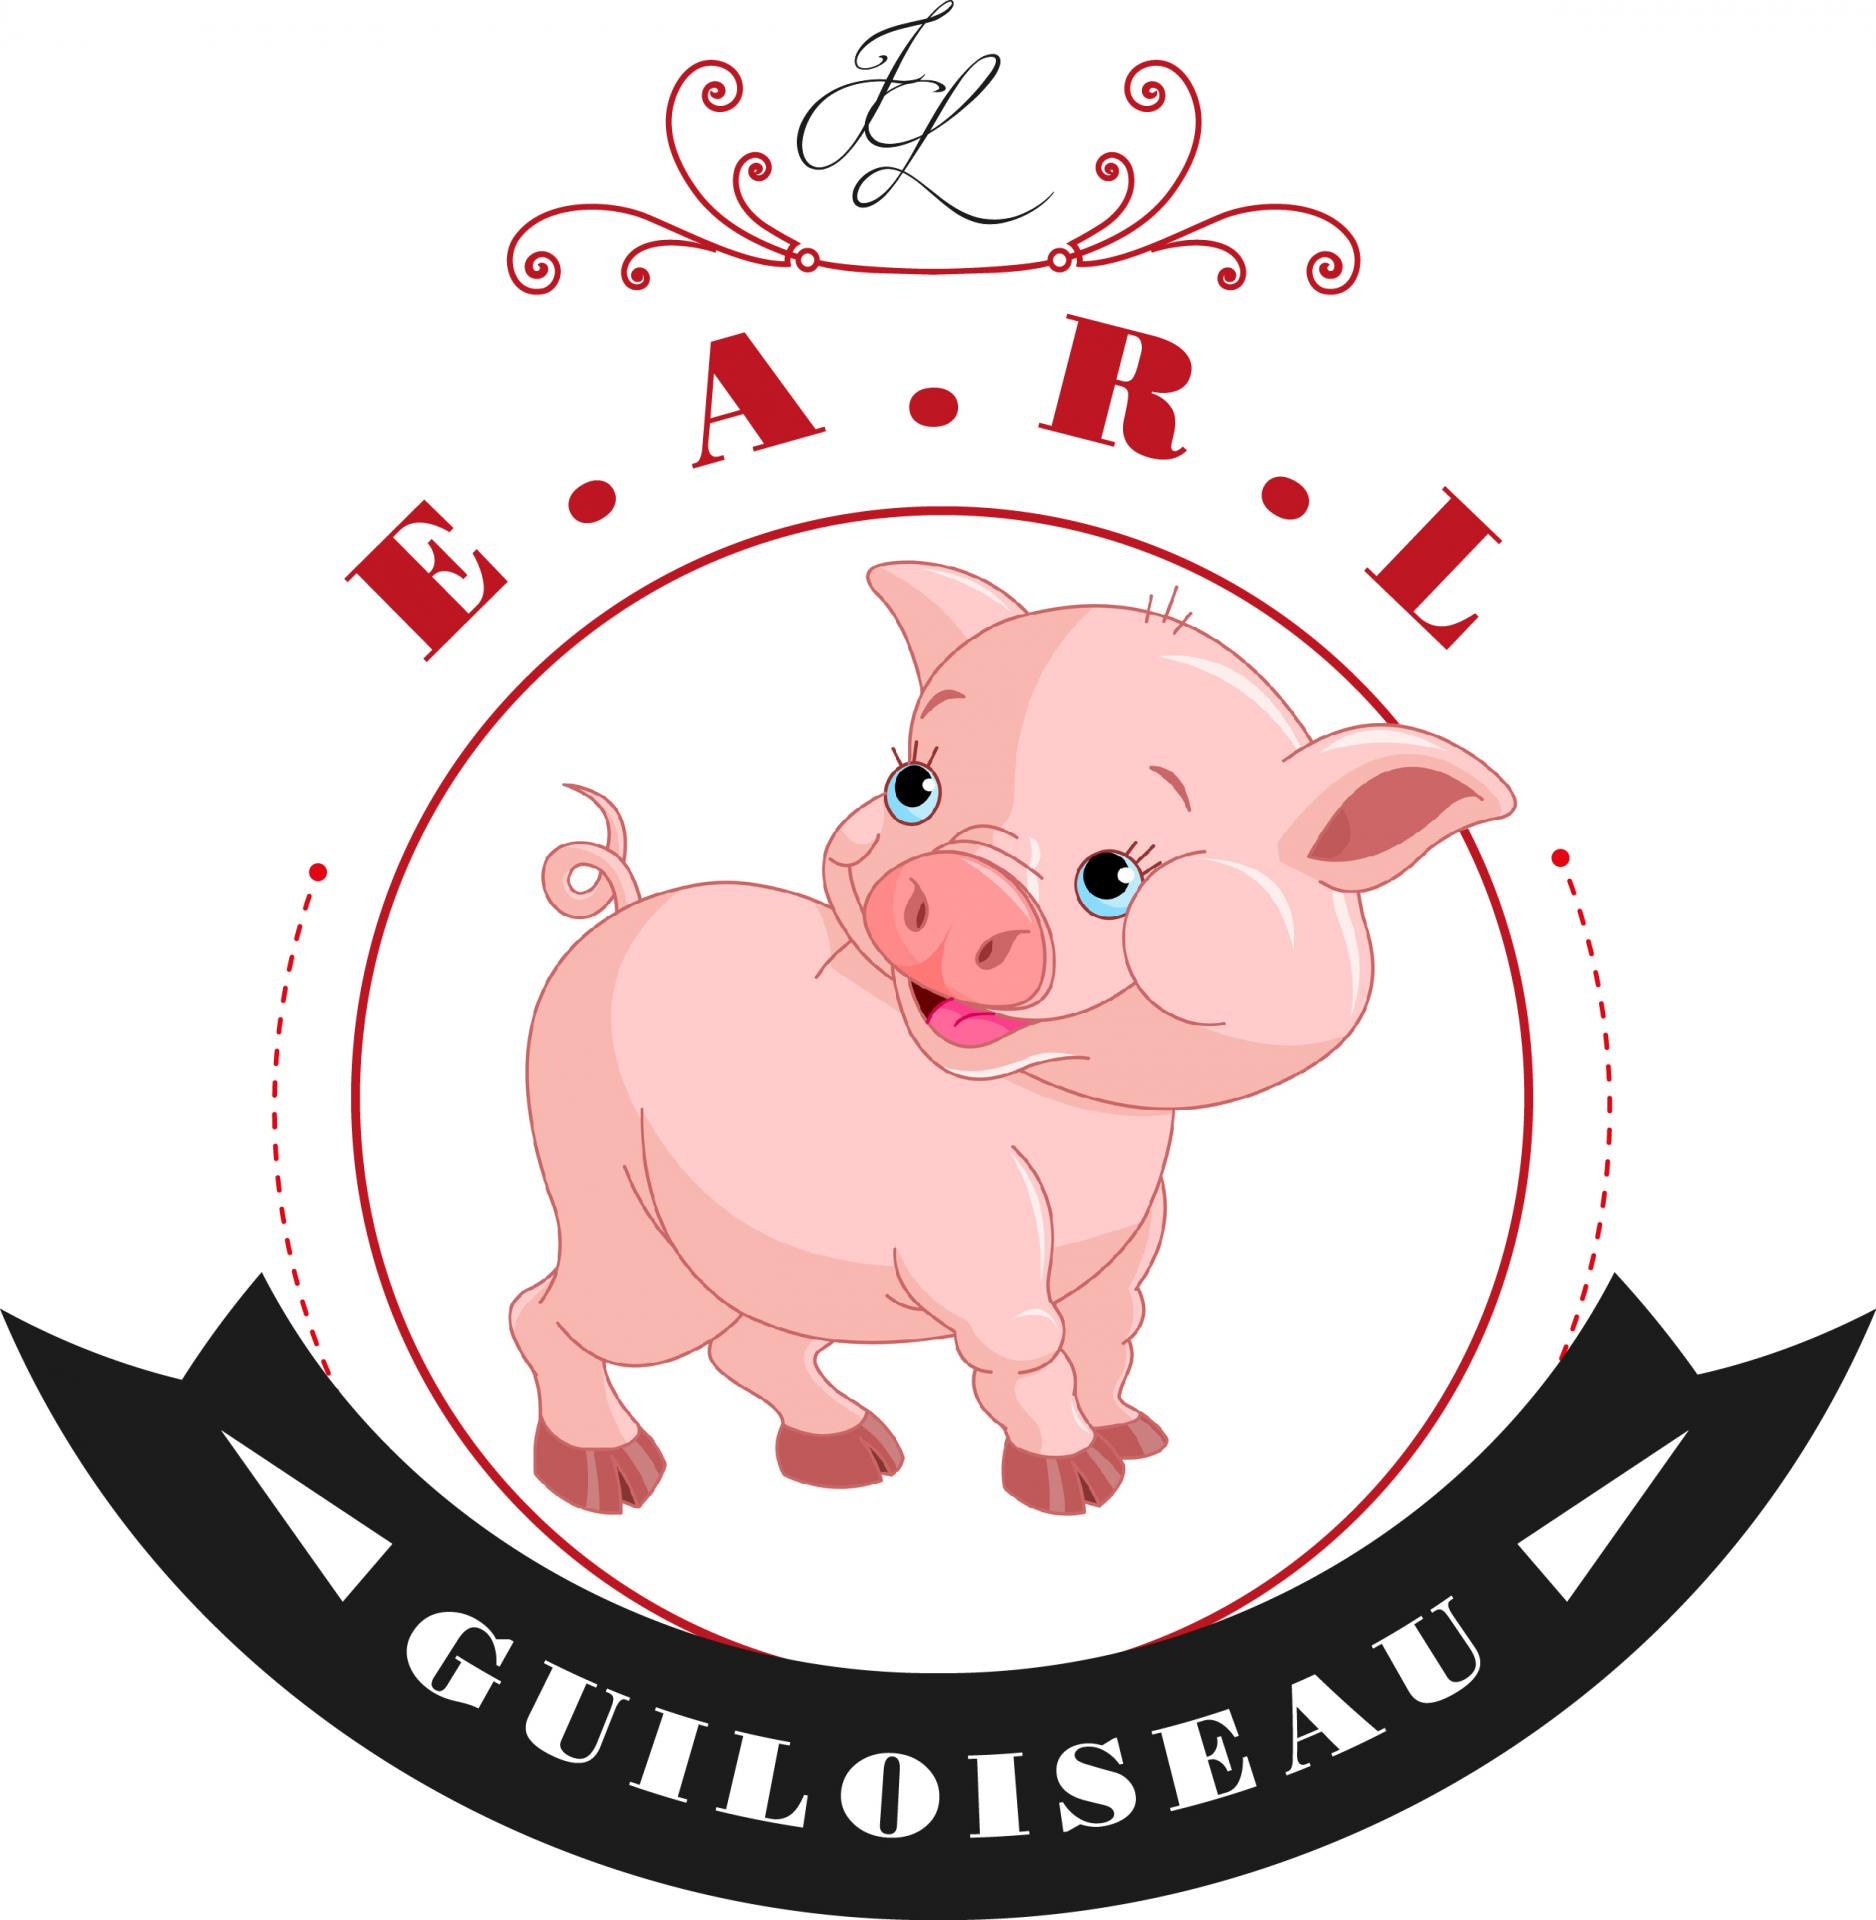 Logo guiloiseau finial